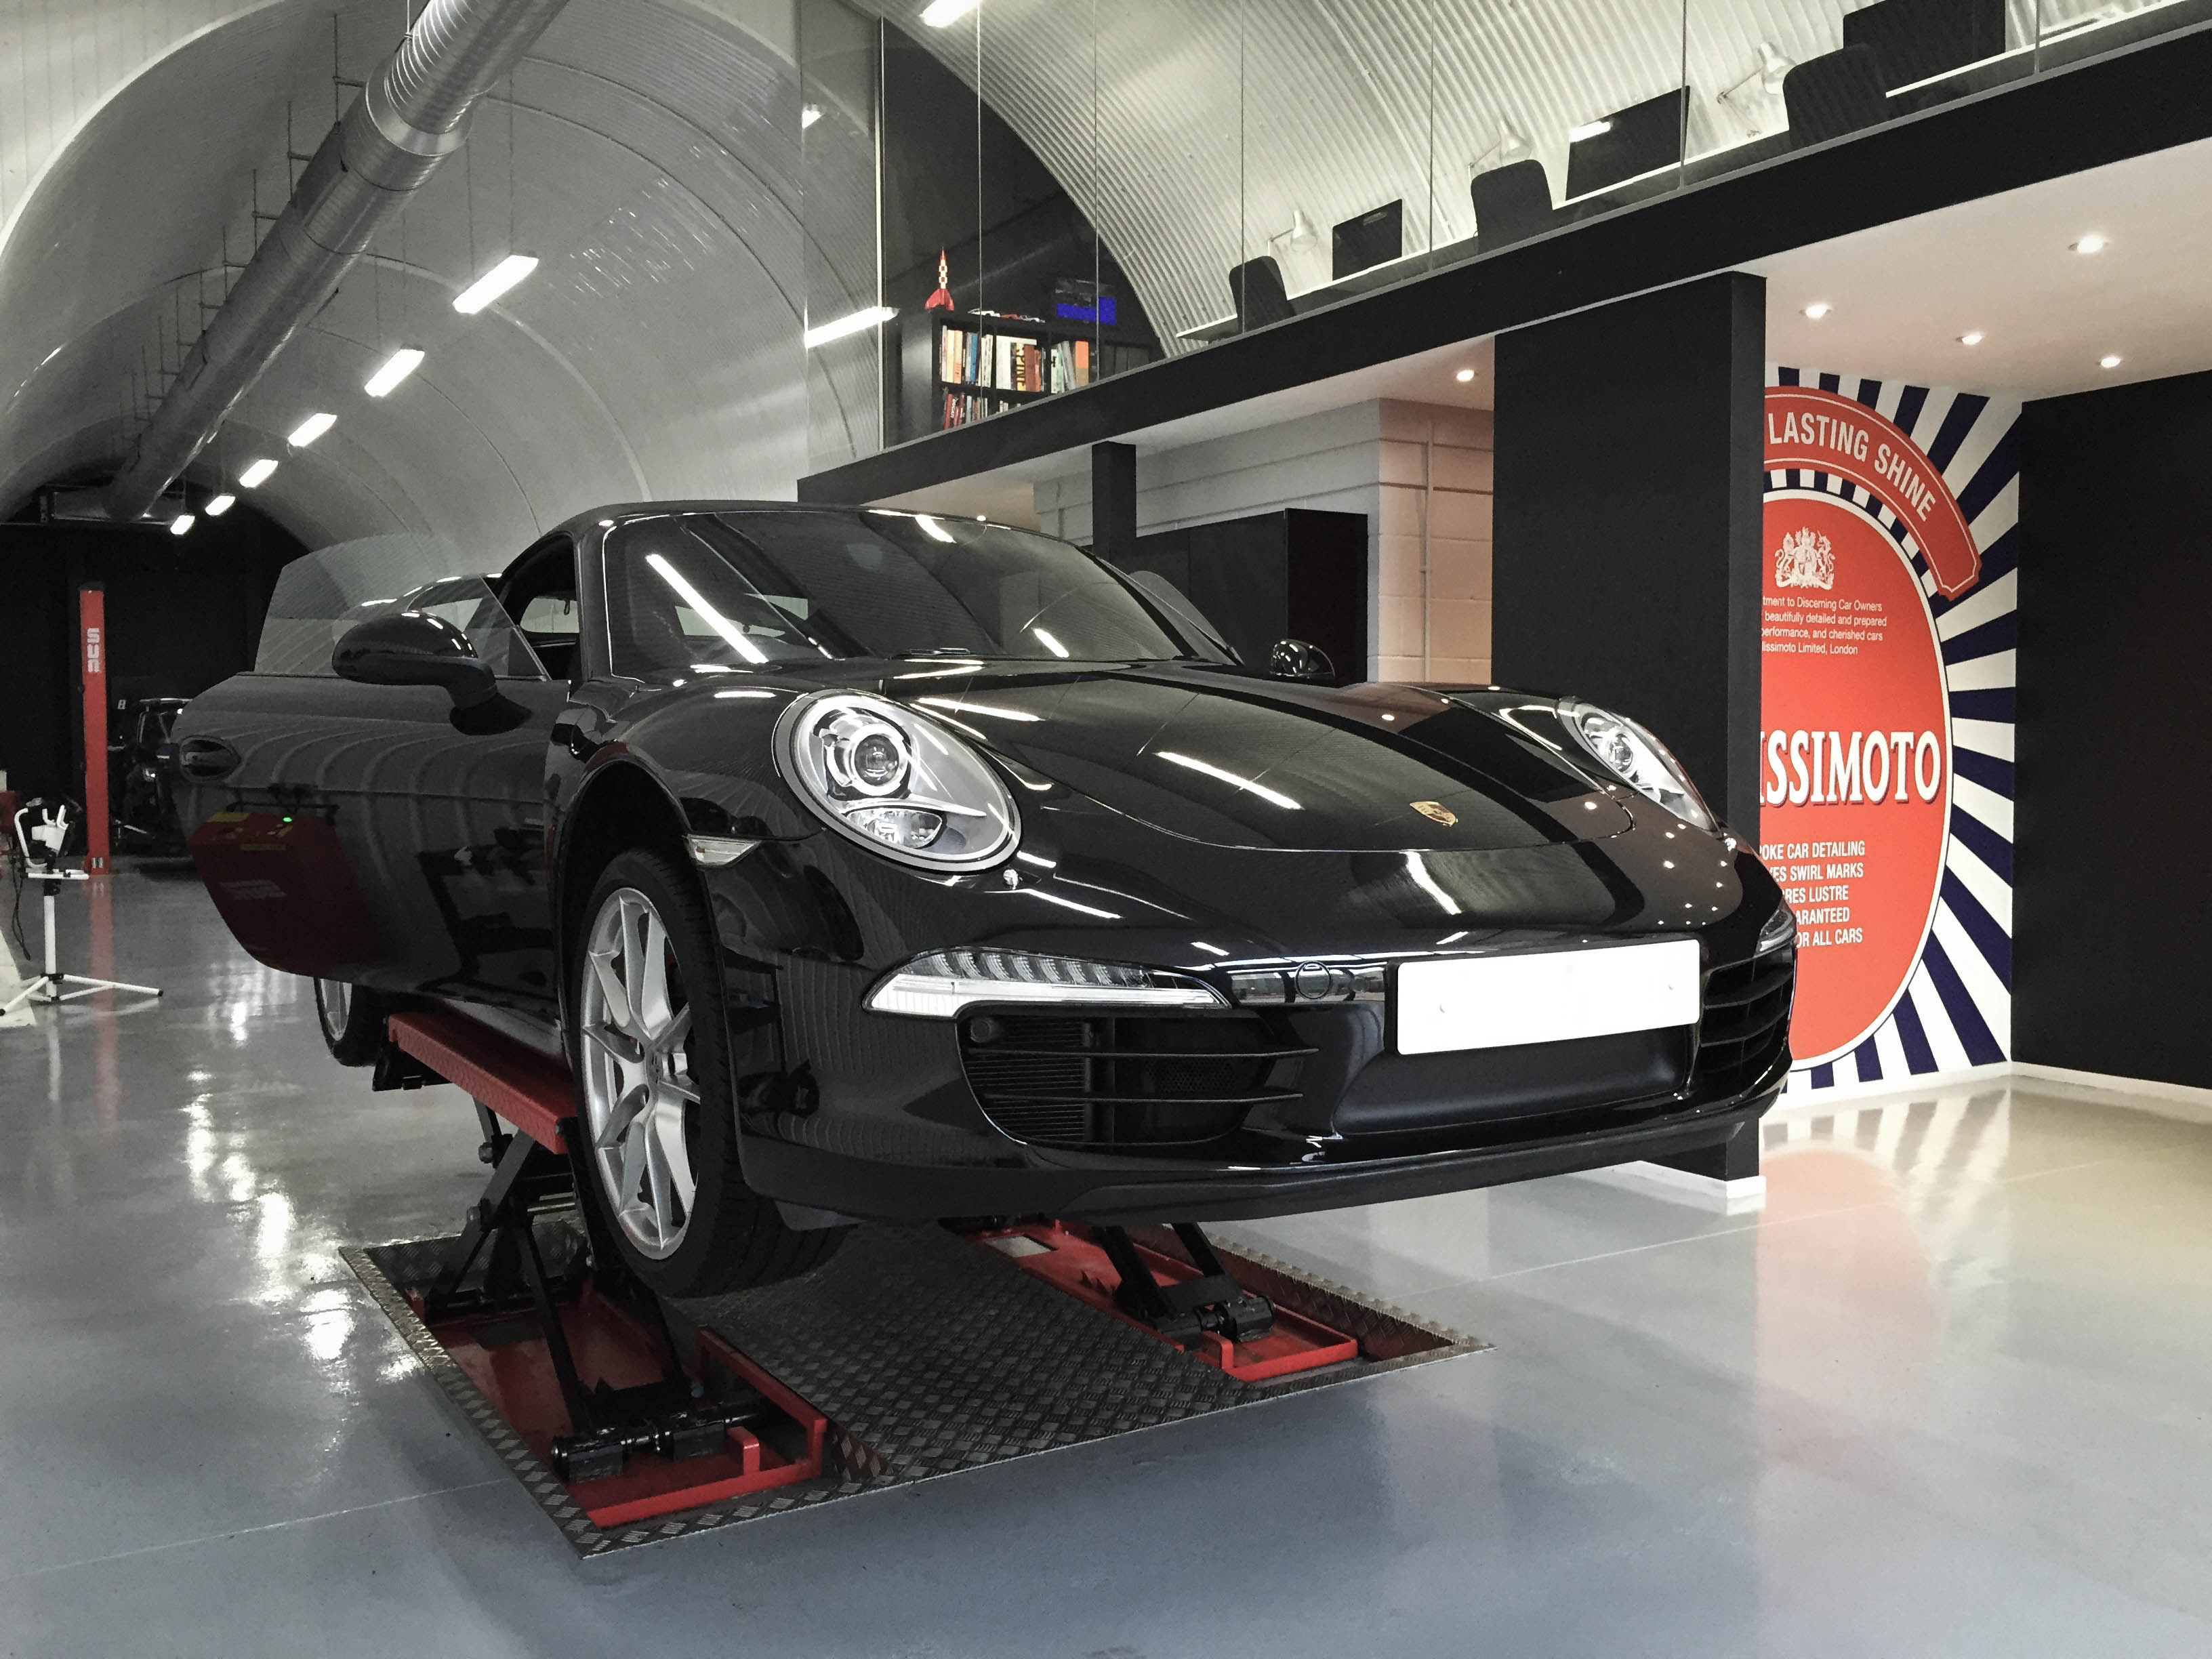 Porsche 911 Carrera – On lift